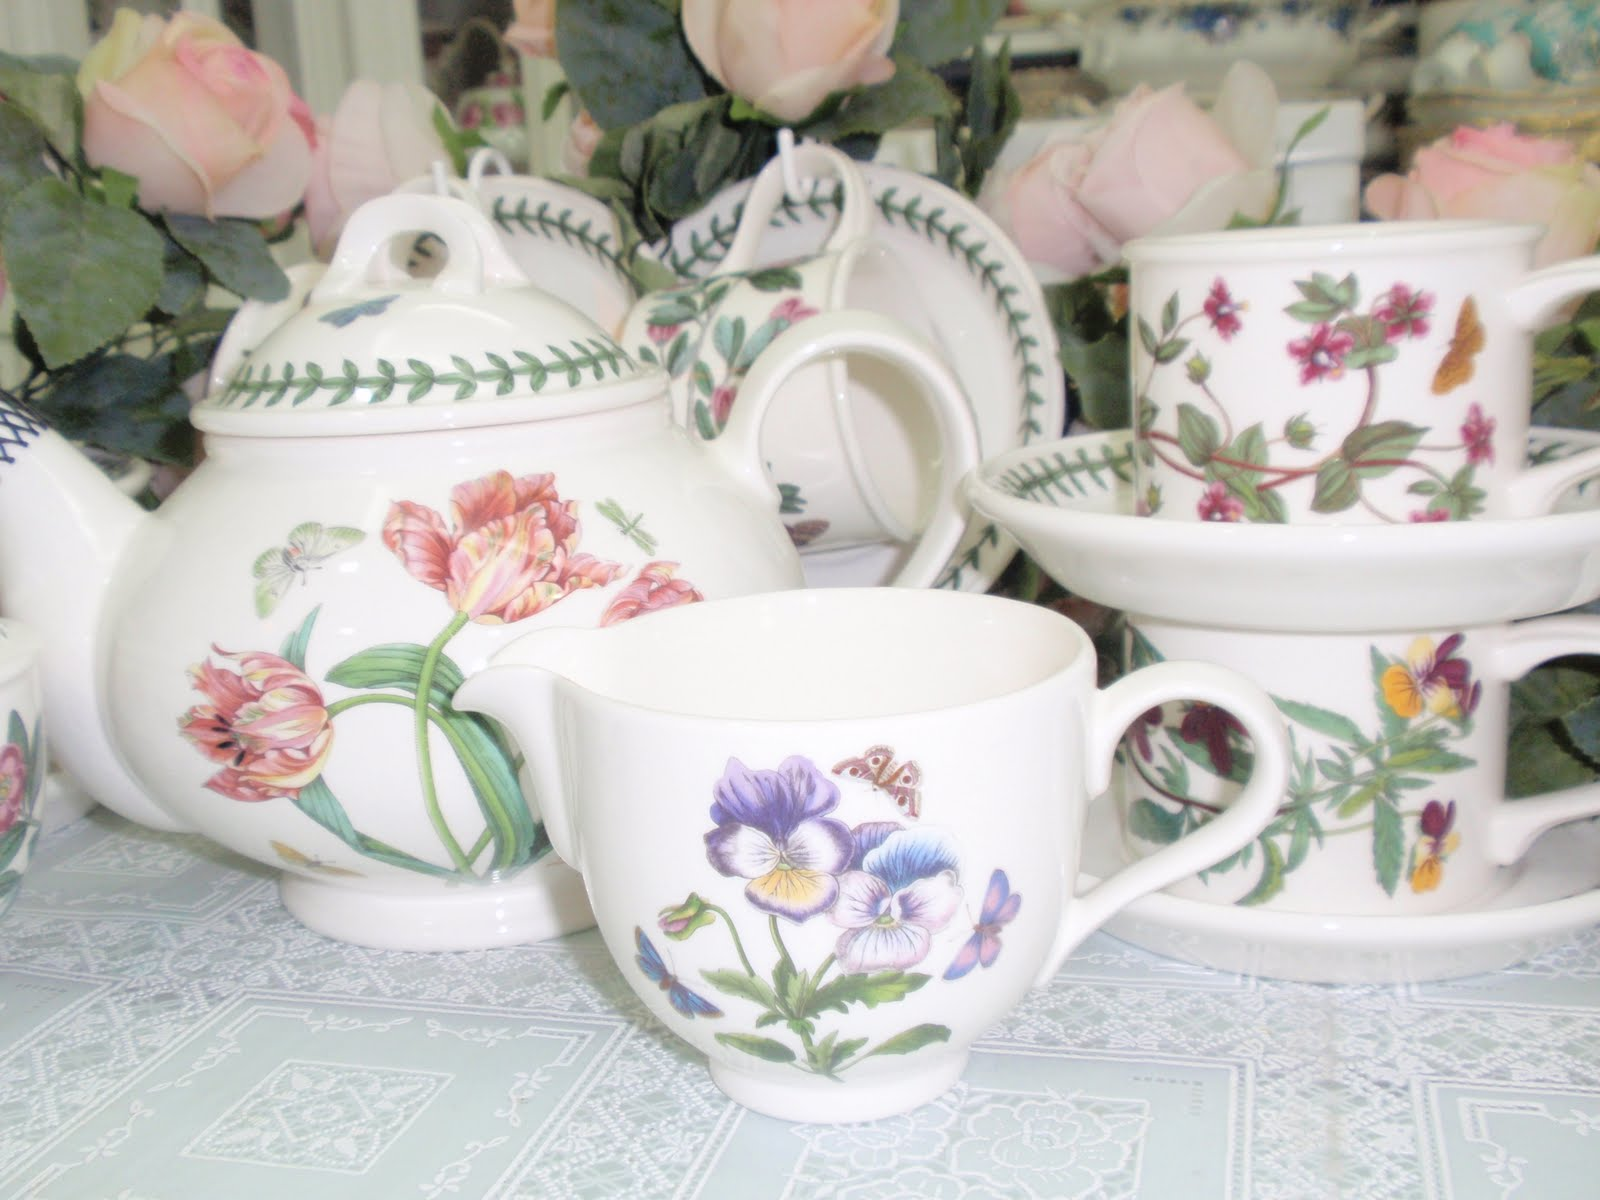 Lovely Treasures From English Garden Portmeirion Botanic Garden Tea Set